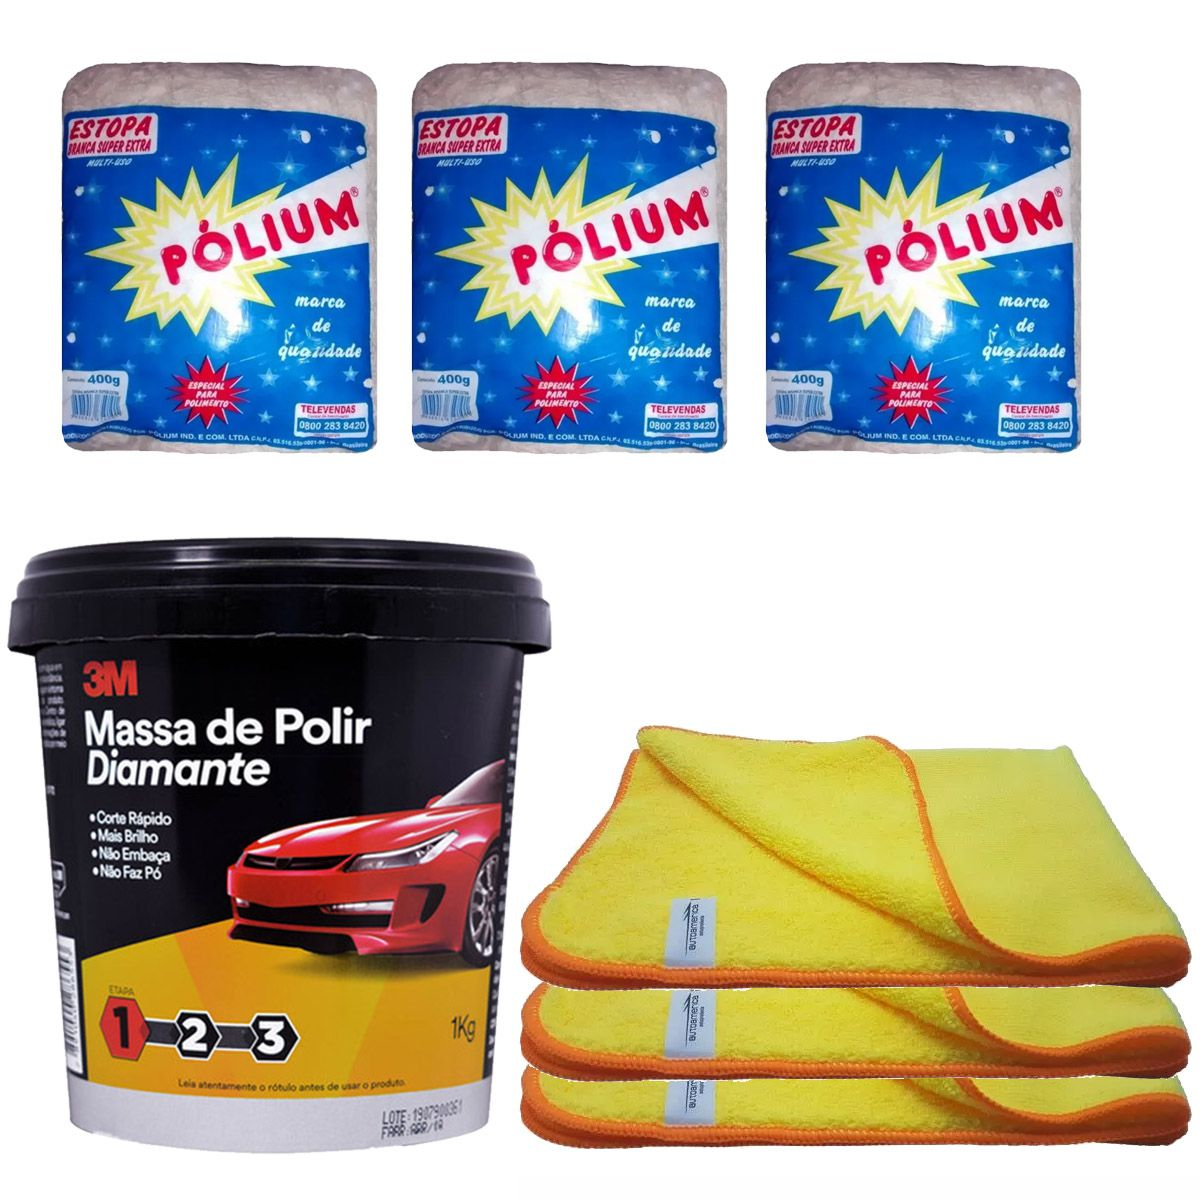 Kit Massa 1Kg Diamante 3M + Flanela 40x60 + Estopa Polium